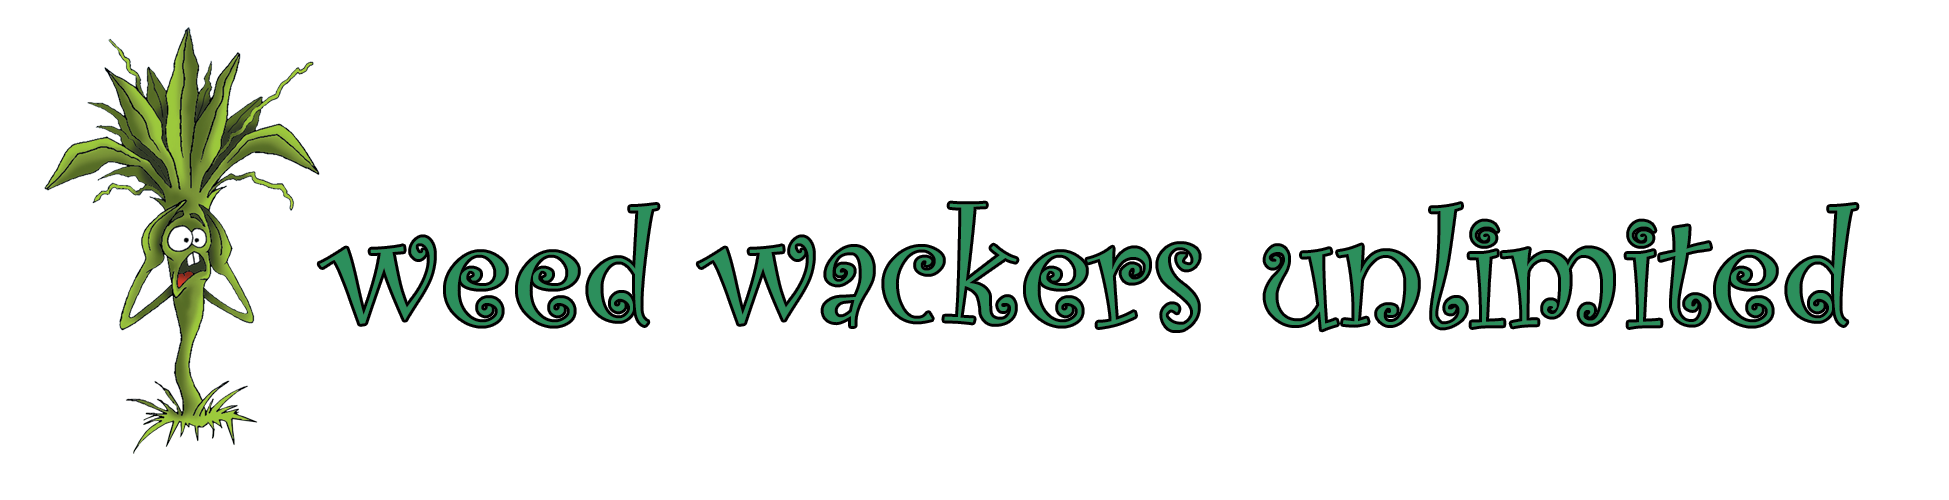 Weed Wackers Unlimited